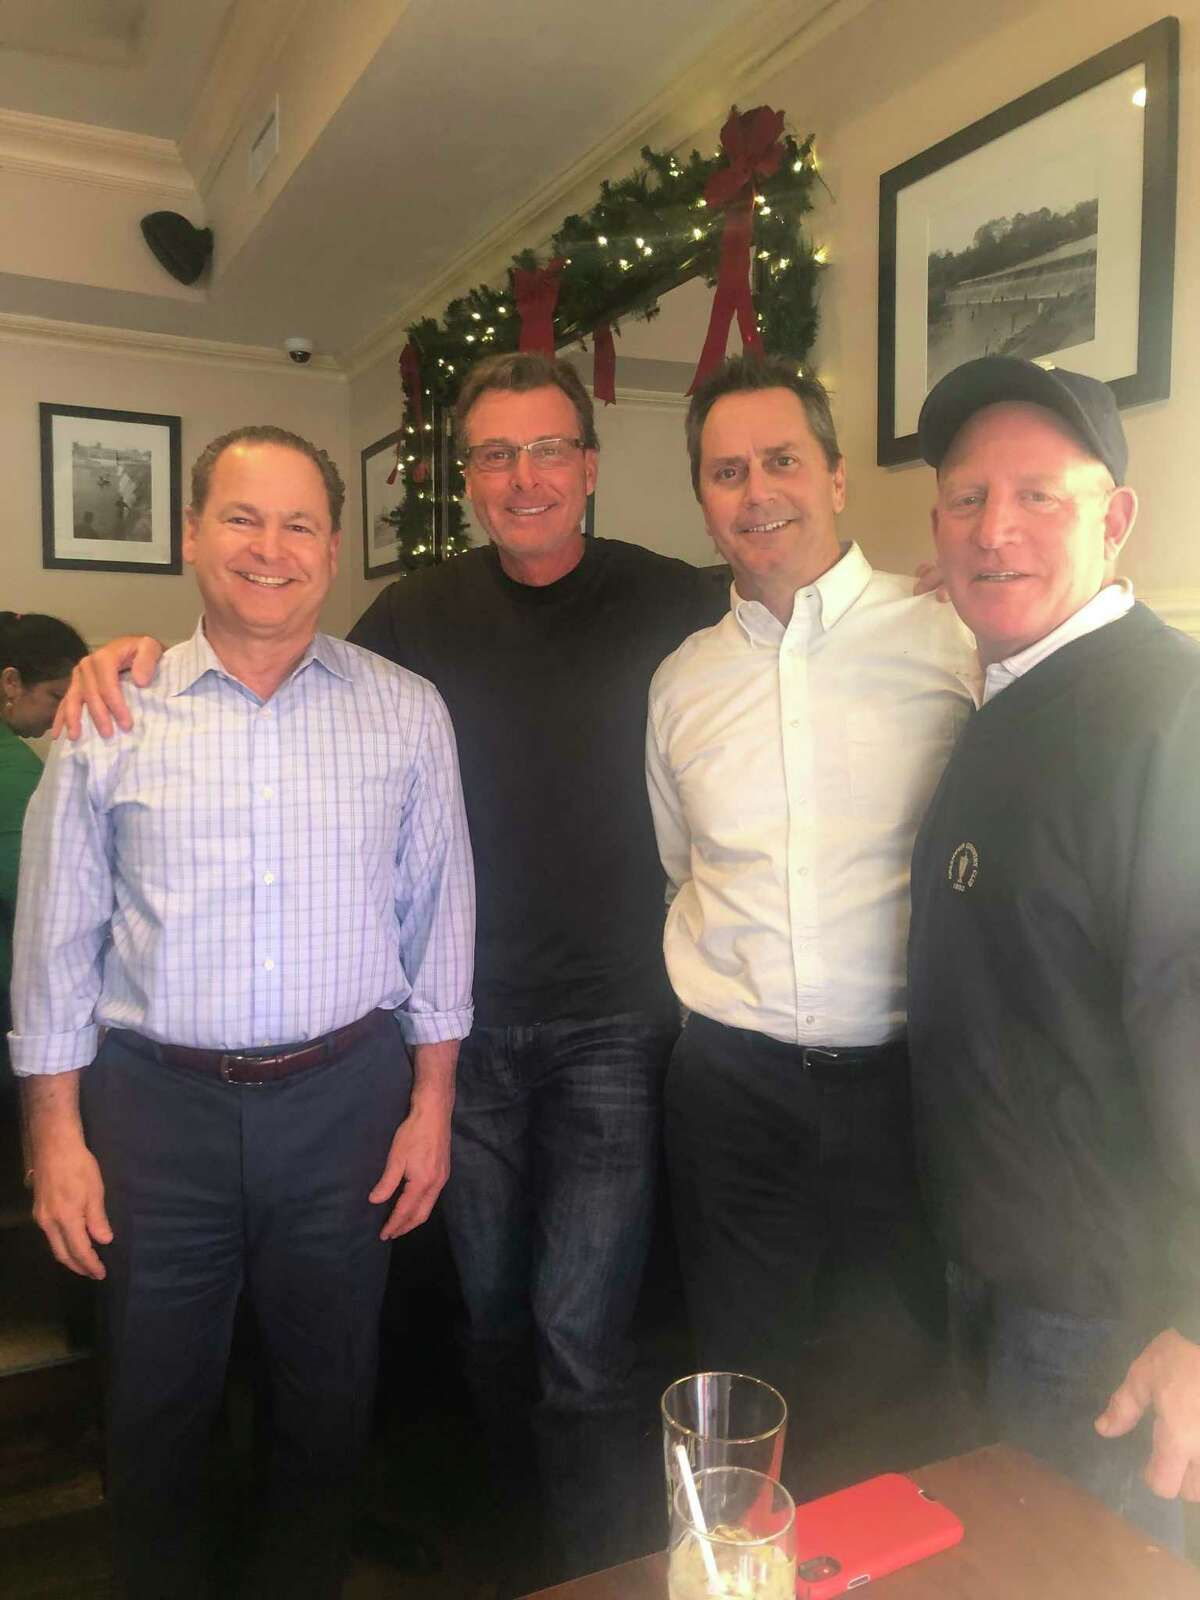 Former New York Mets champion Tim Teufel (second from left) with his posse of friends, Steve Gordon (left), Jim Kavanagh and Casey O'Brien at Caren's Cos Cobber in Greenwich.